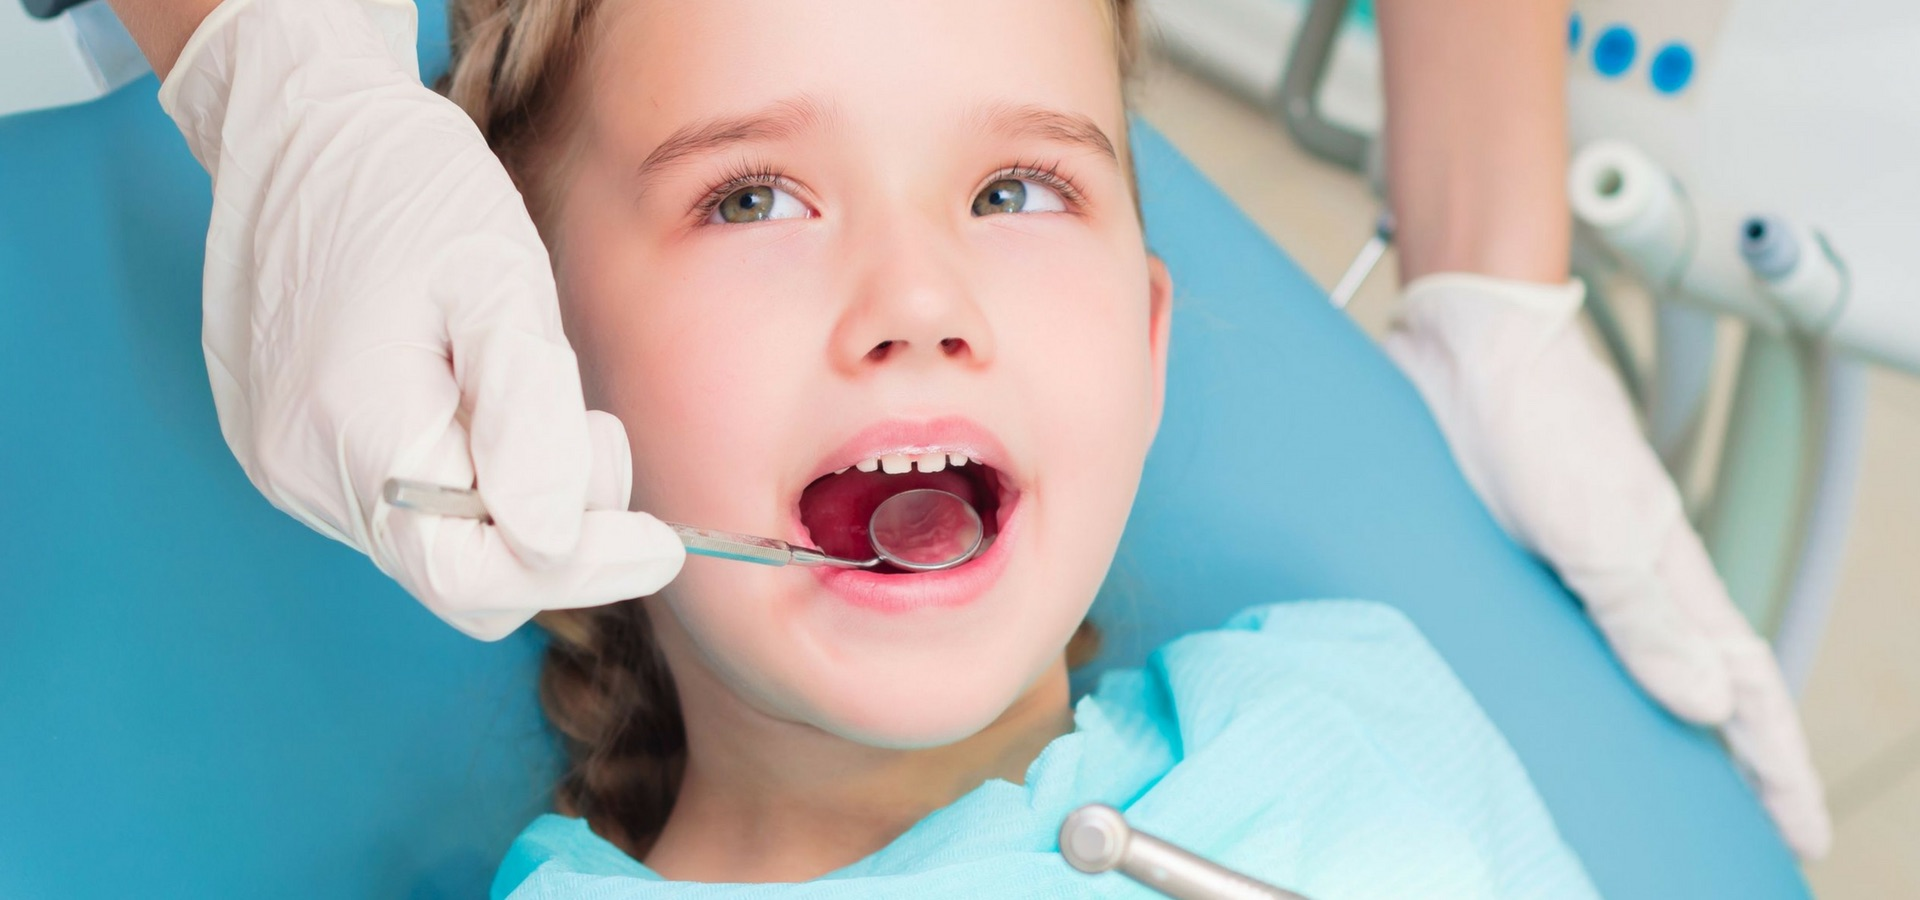 Overcoming The Fear Of The Dentist Starts At Childhood